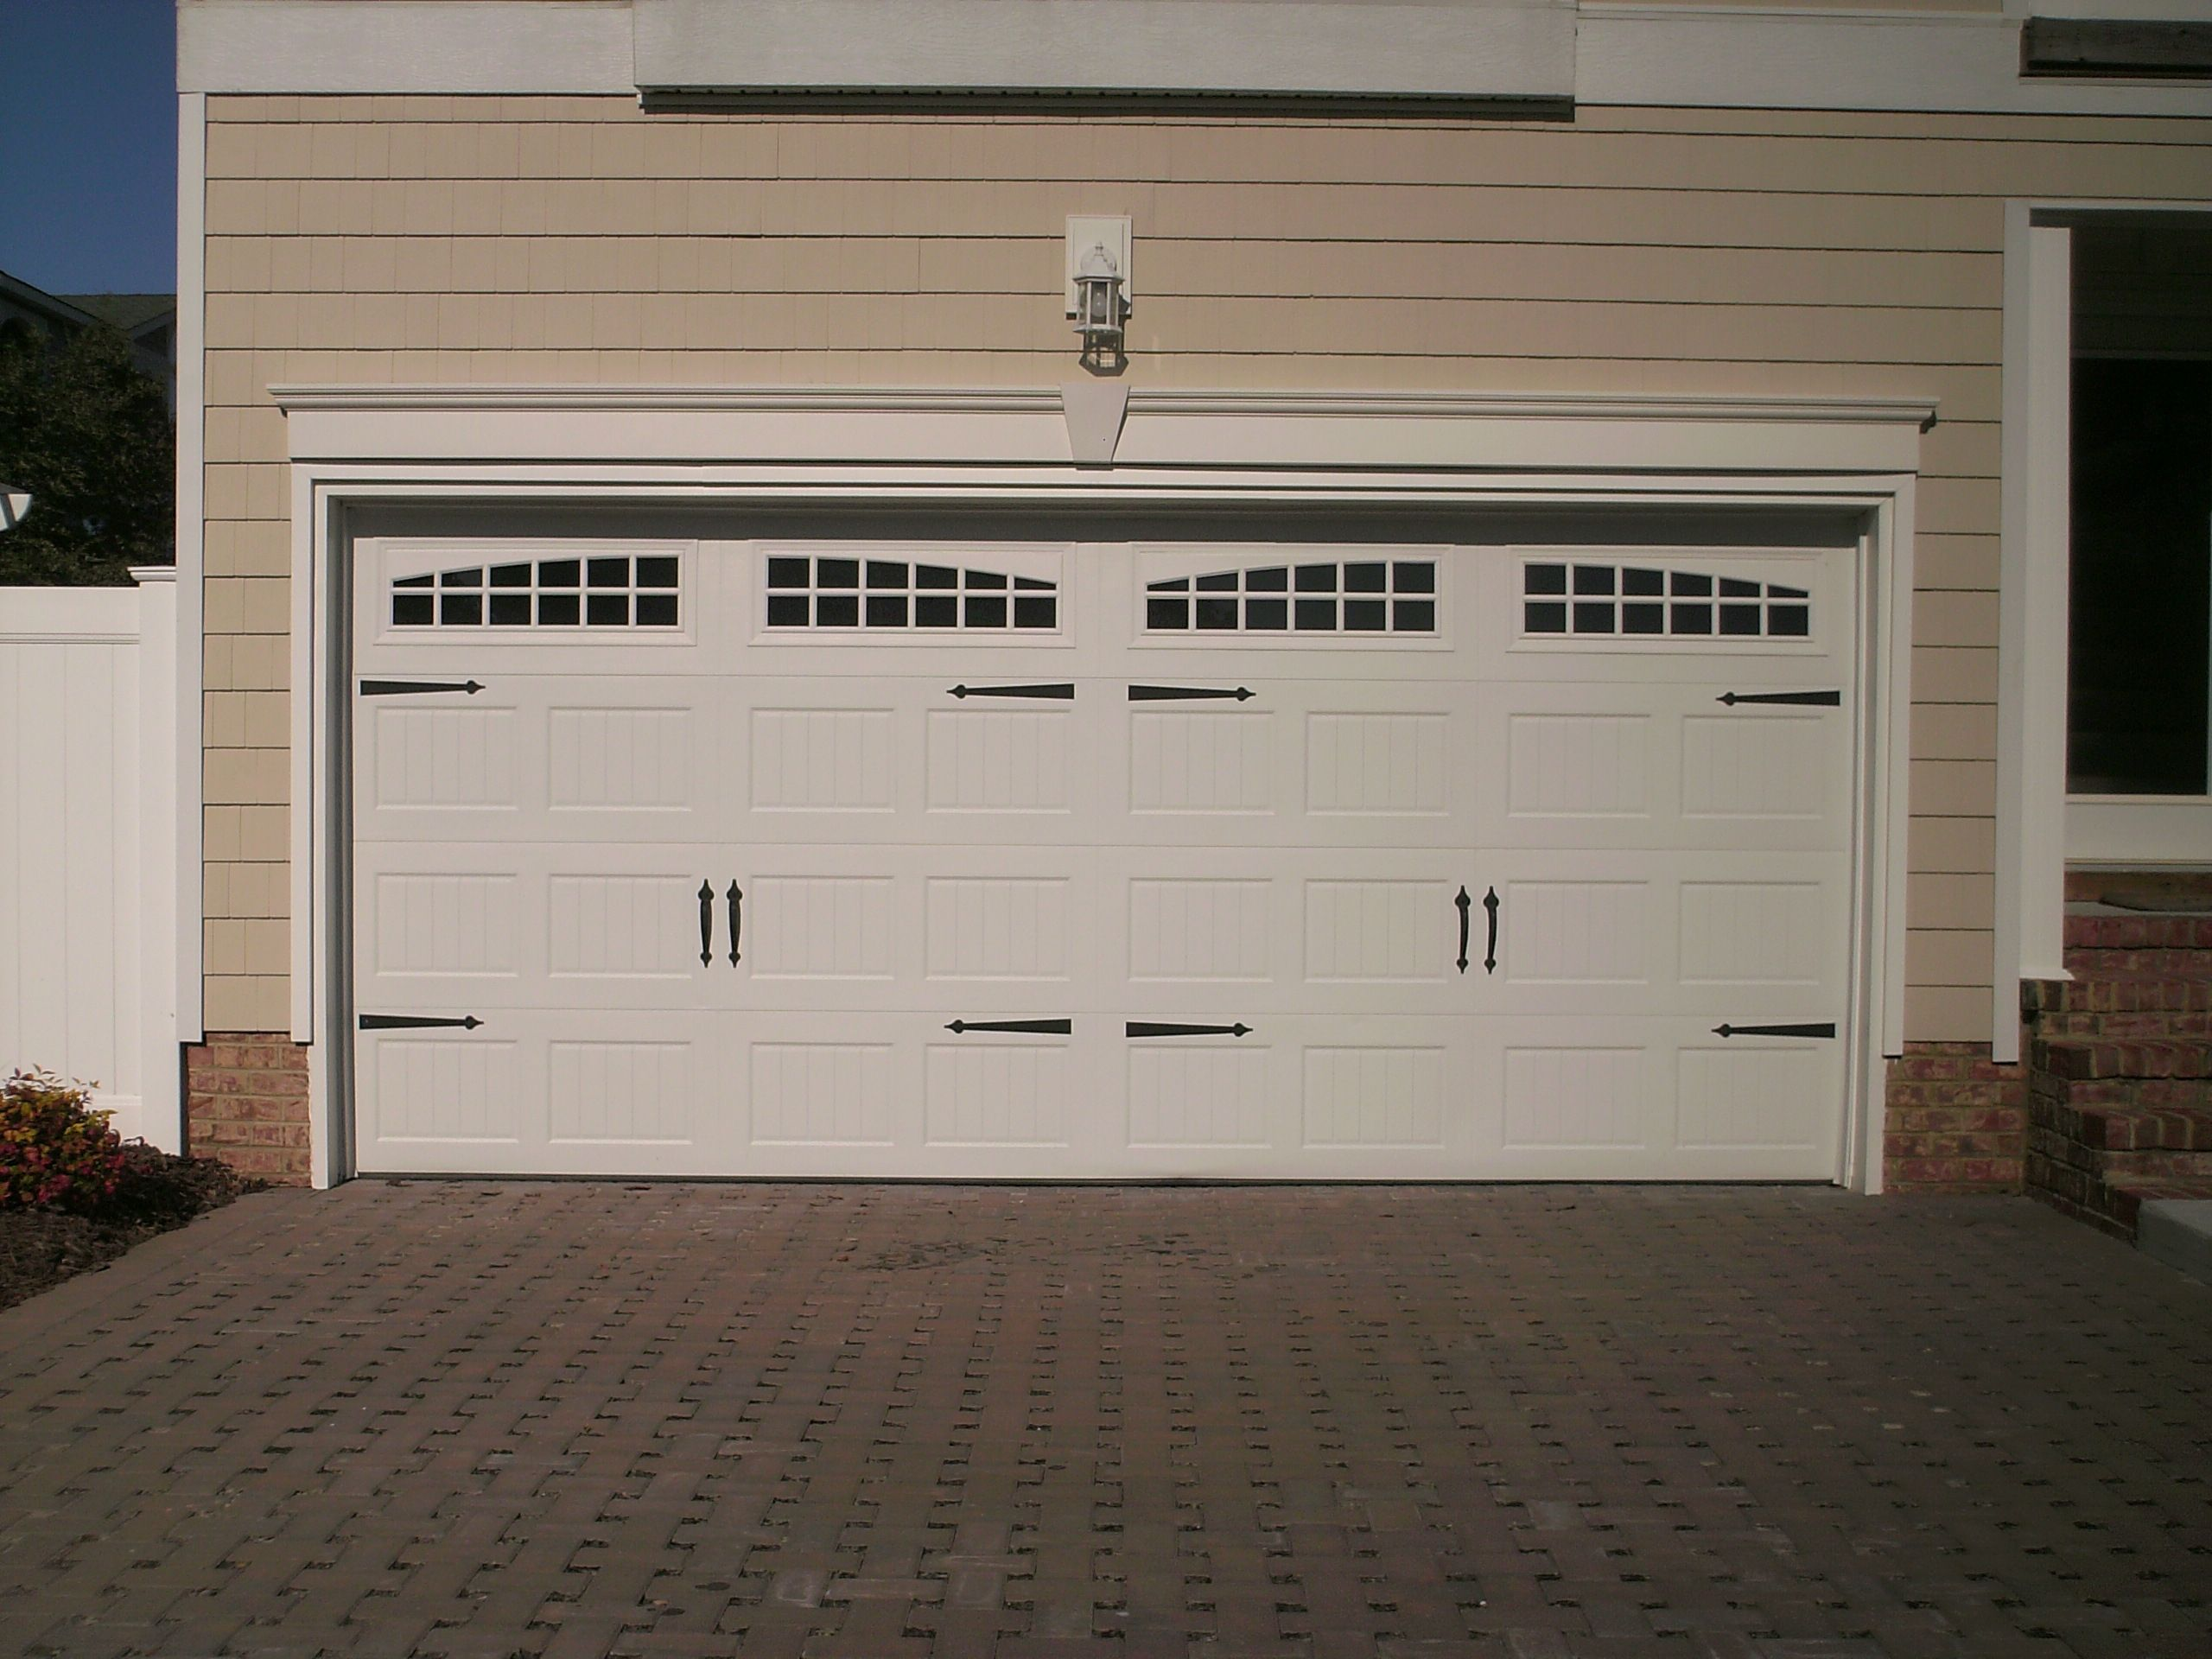 10 X 9 Insulated Garage Door Carriage Style Garage Doors Double Garage Door Garage Doors